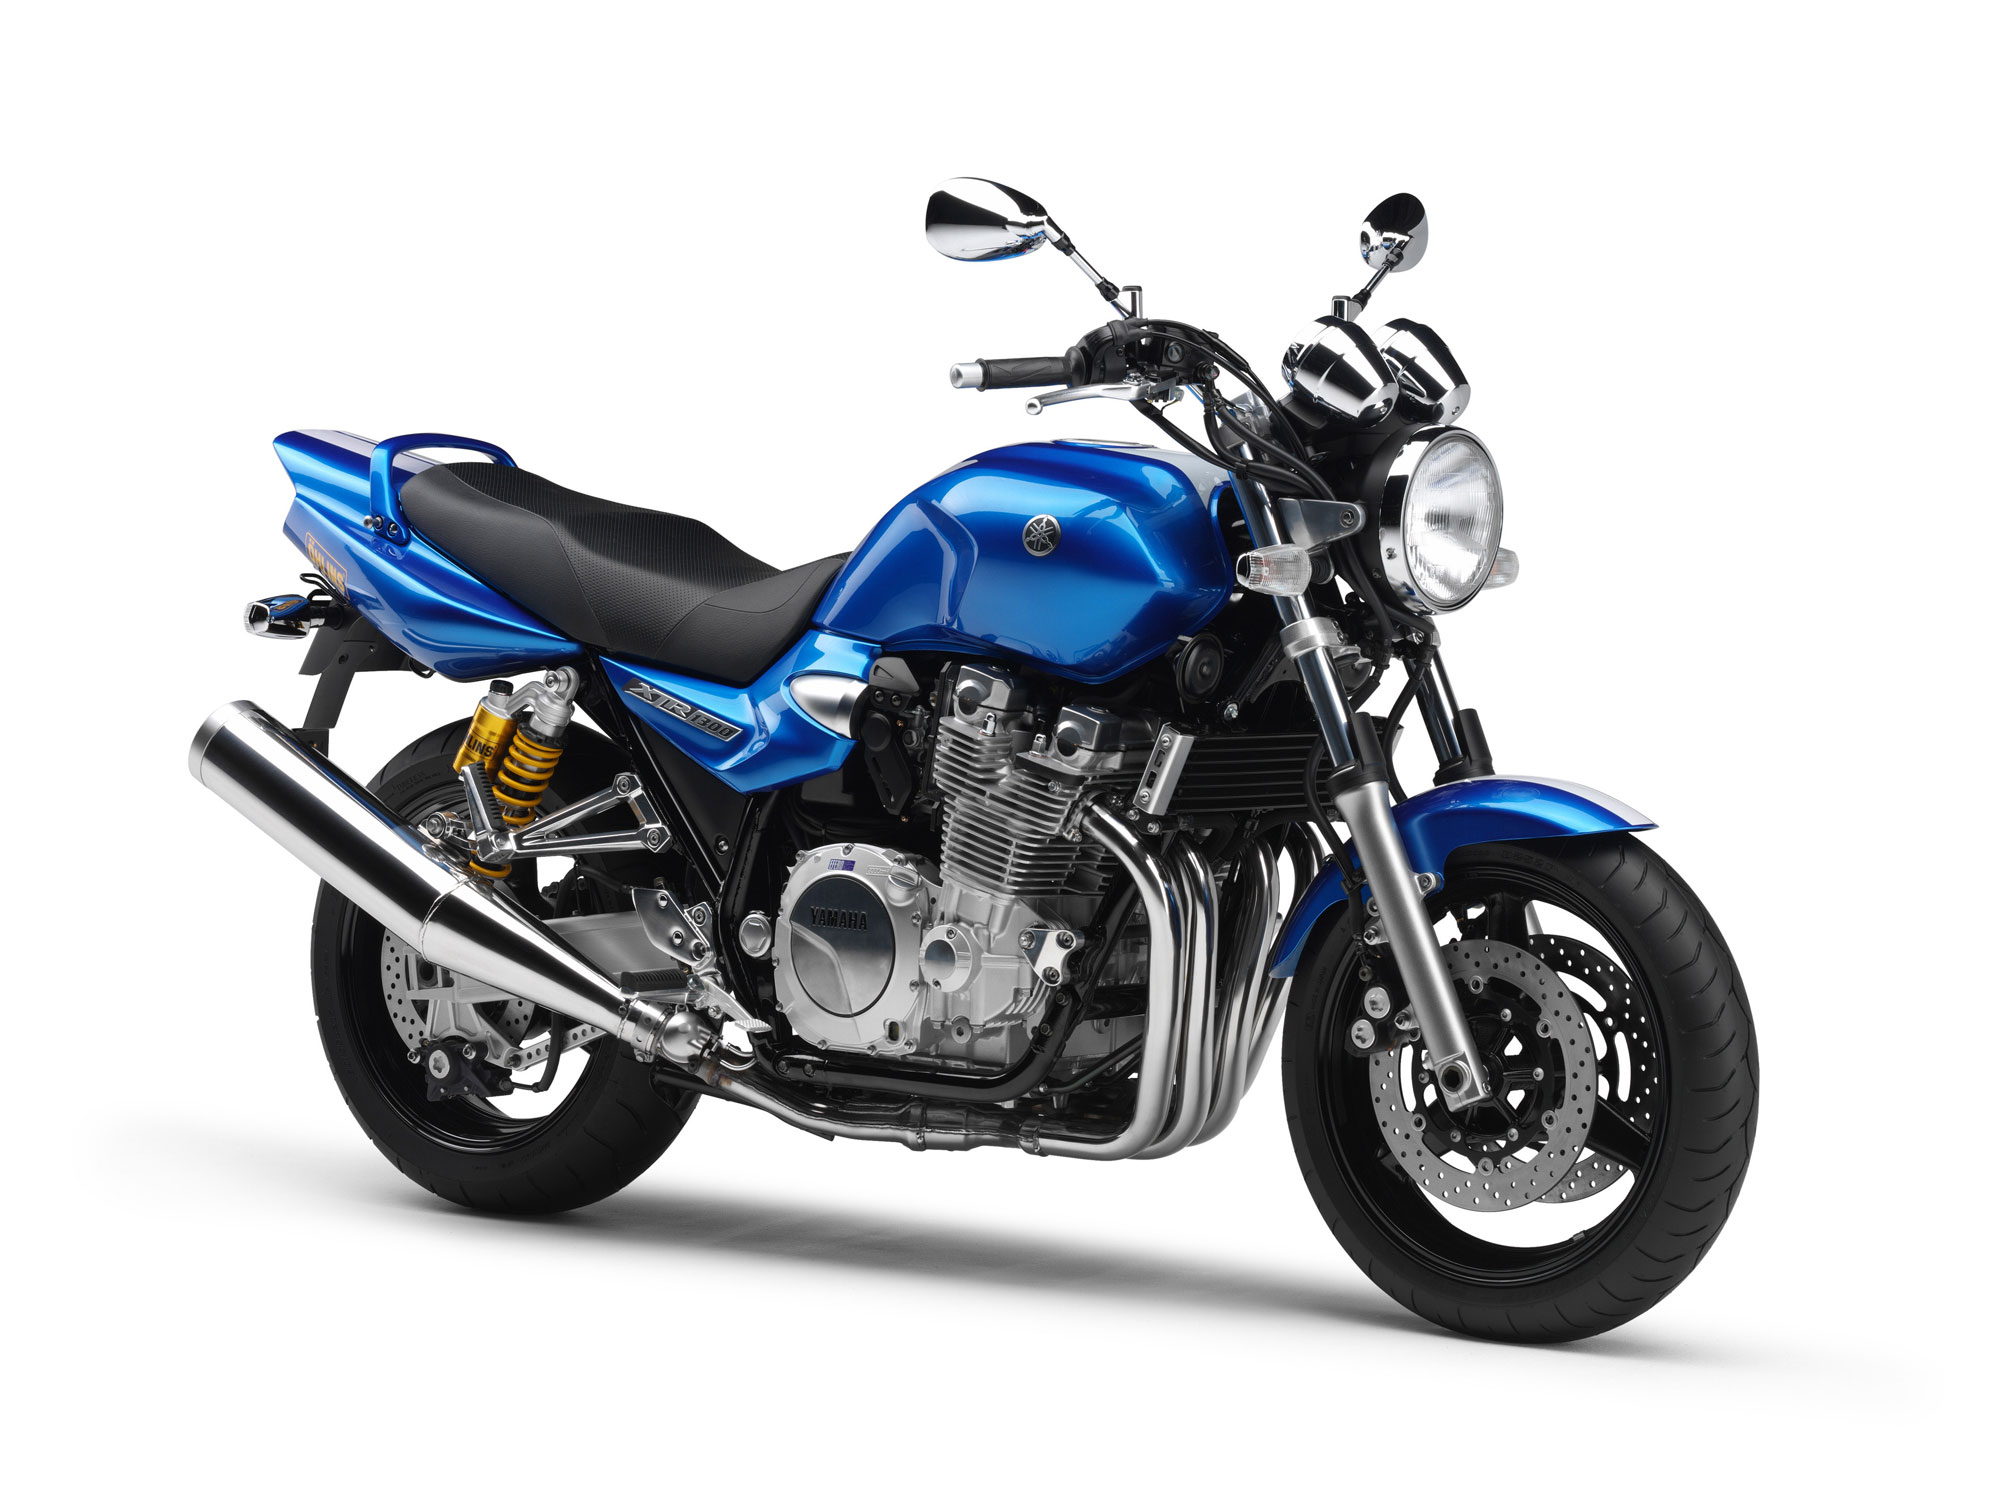 2021 Yamaha MT-10 Guide • Total Motorcycle